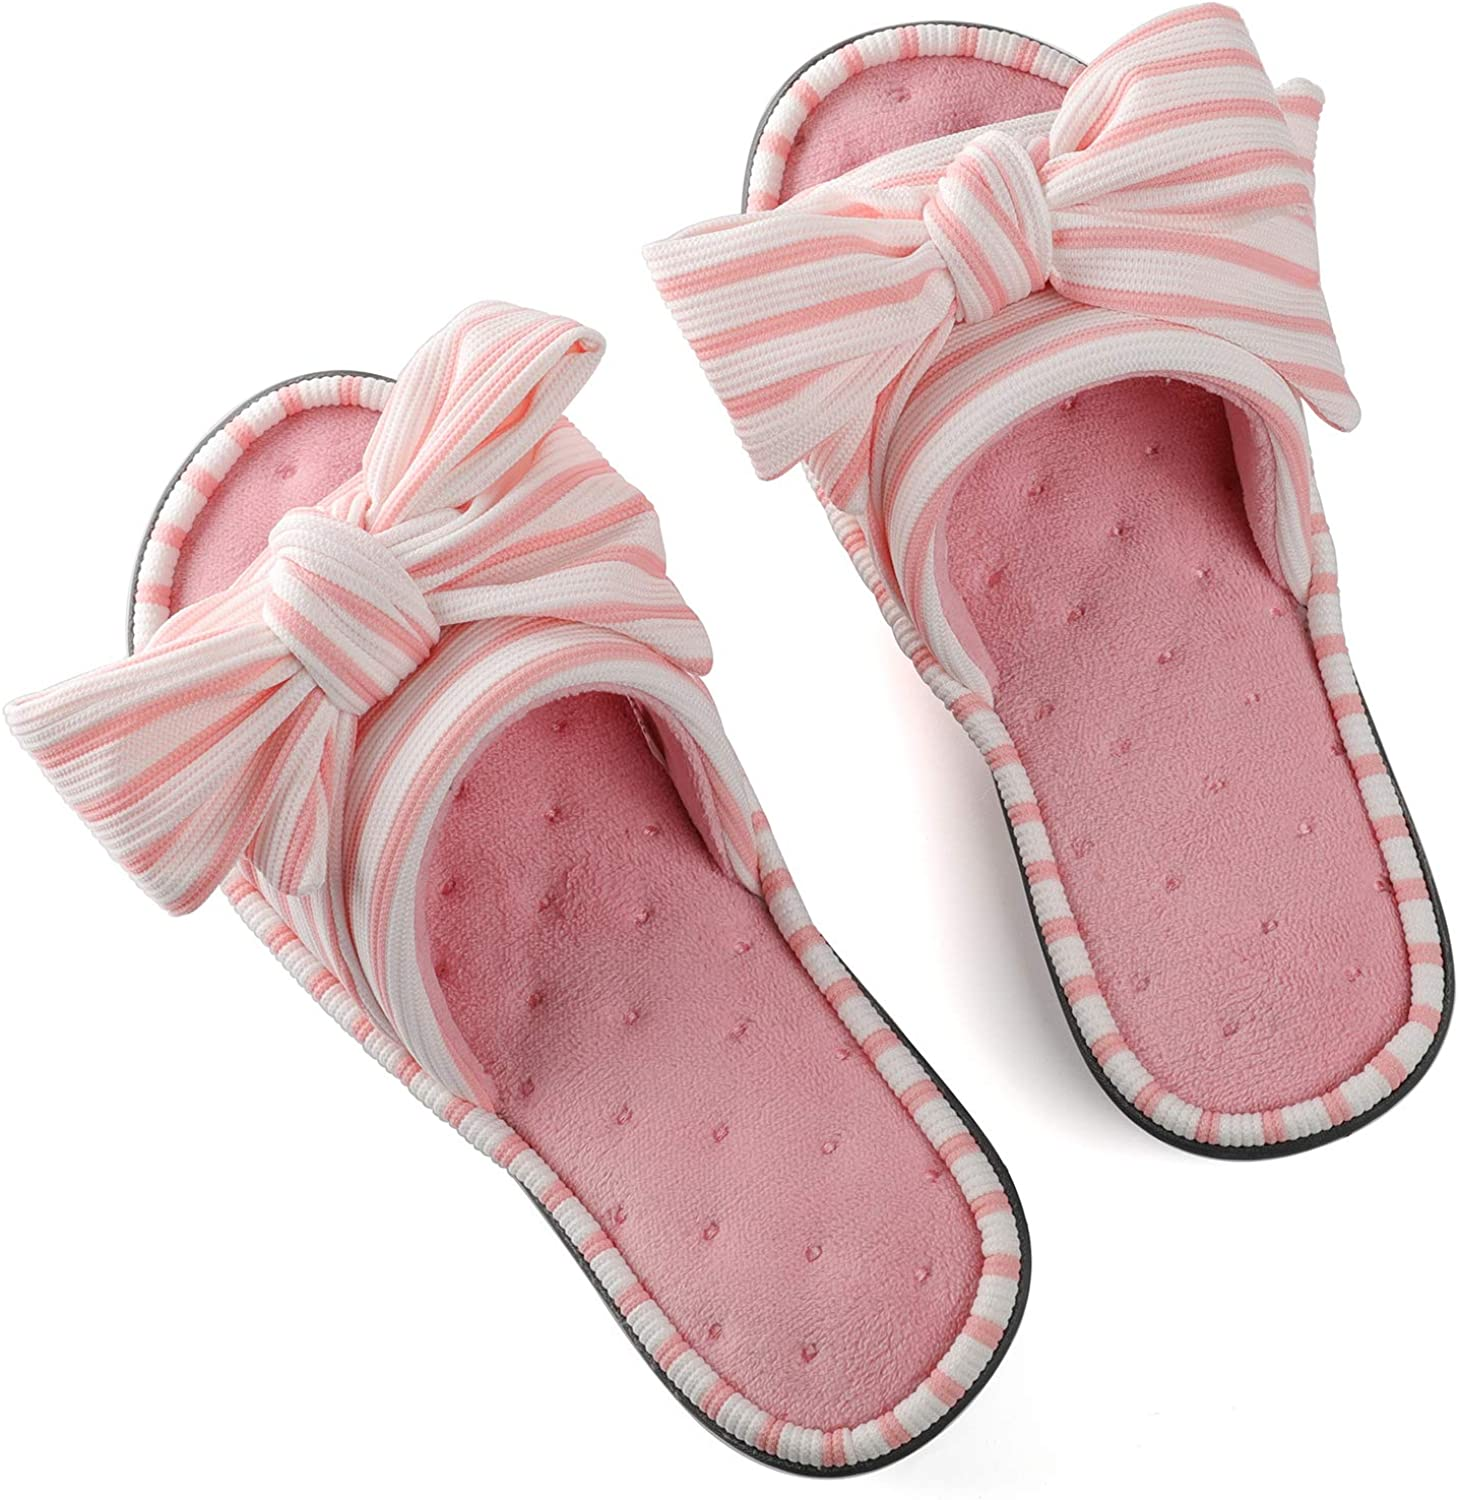 Ladies Cute Slip-on House Shoes Spa Mules Sandals with Indoor Outdoor Anti-Skid Rubber Sole ULTRAIDEAS Womens Memory Foam Open Toe Slide Slippers with Adjustable Strap and Cozy Terry Lining